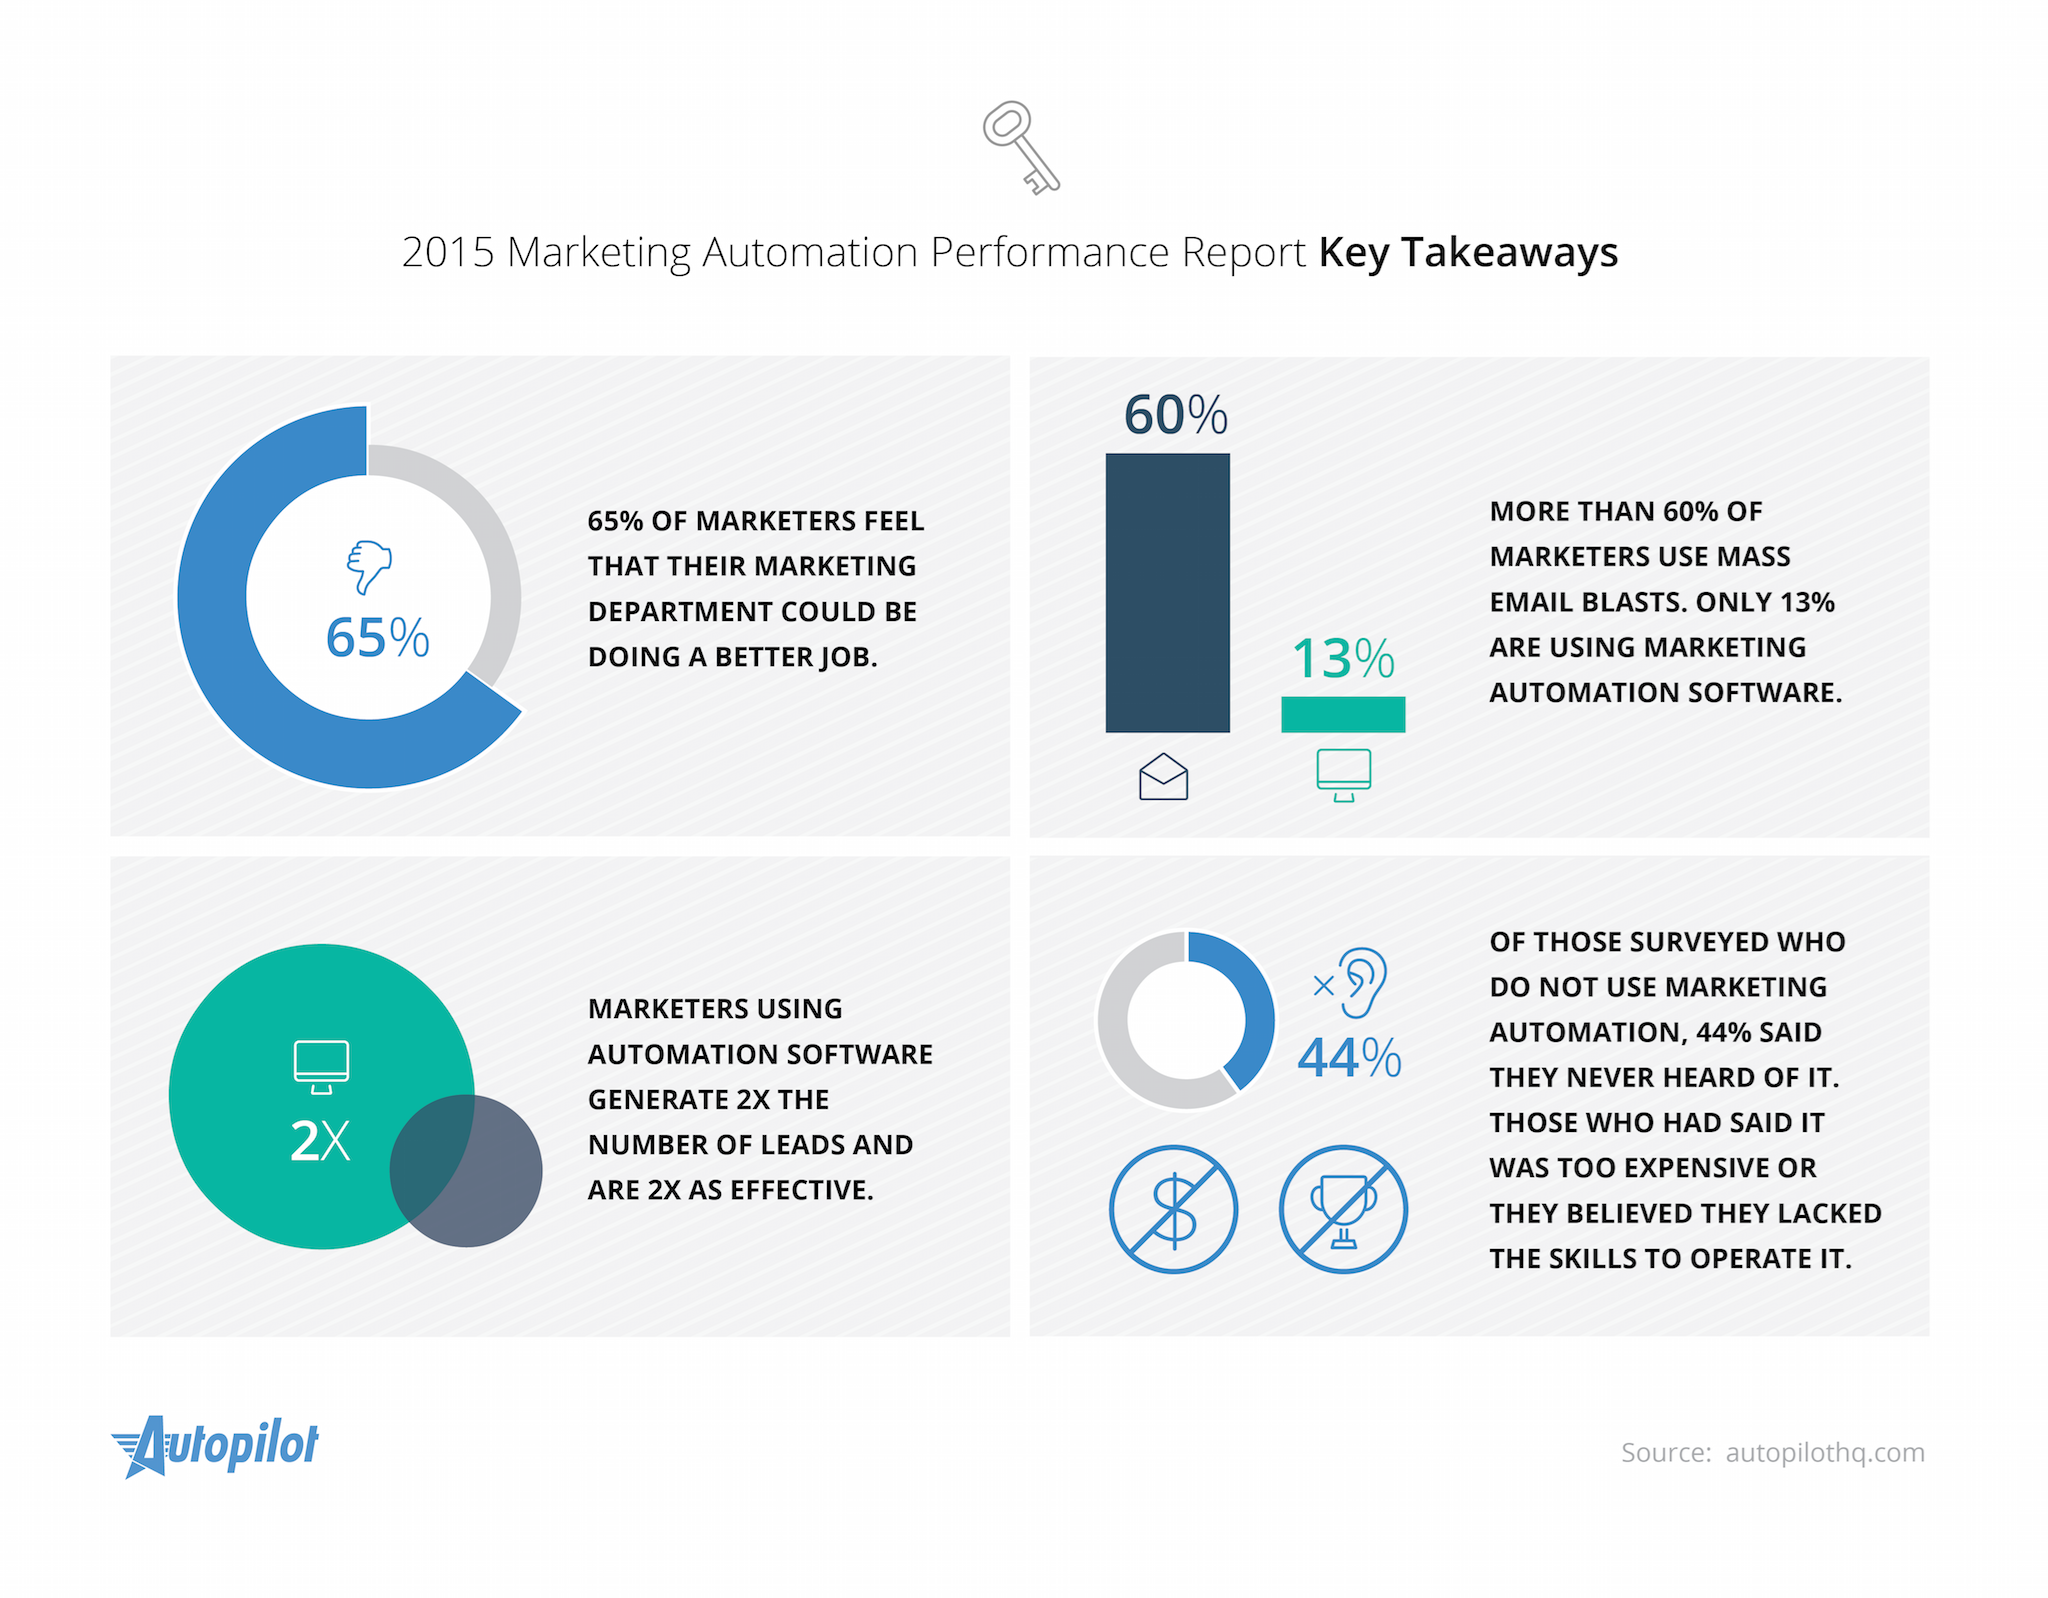 Autopilot finds marketing automation adoption low